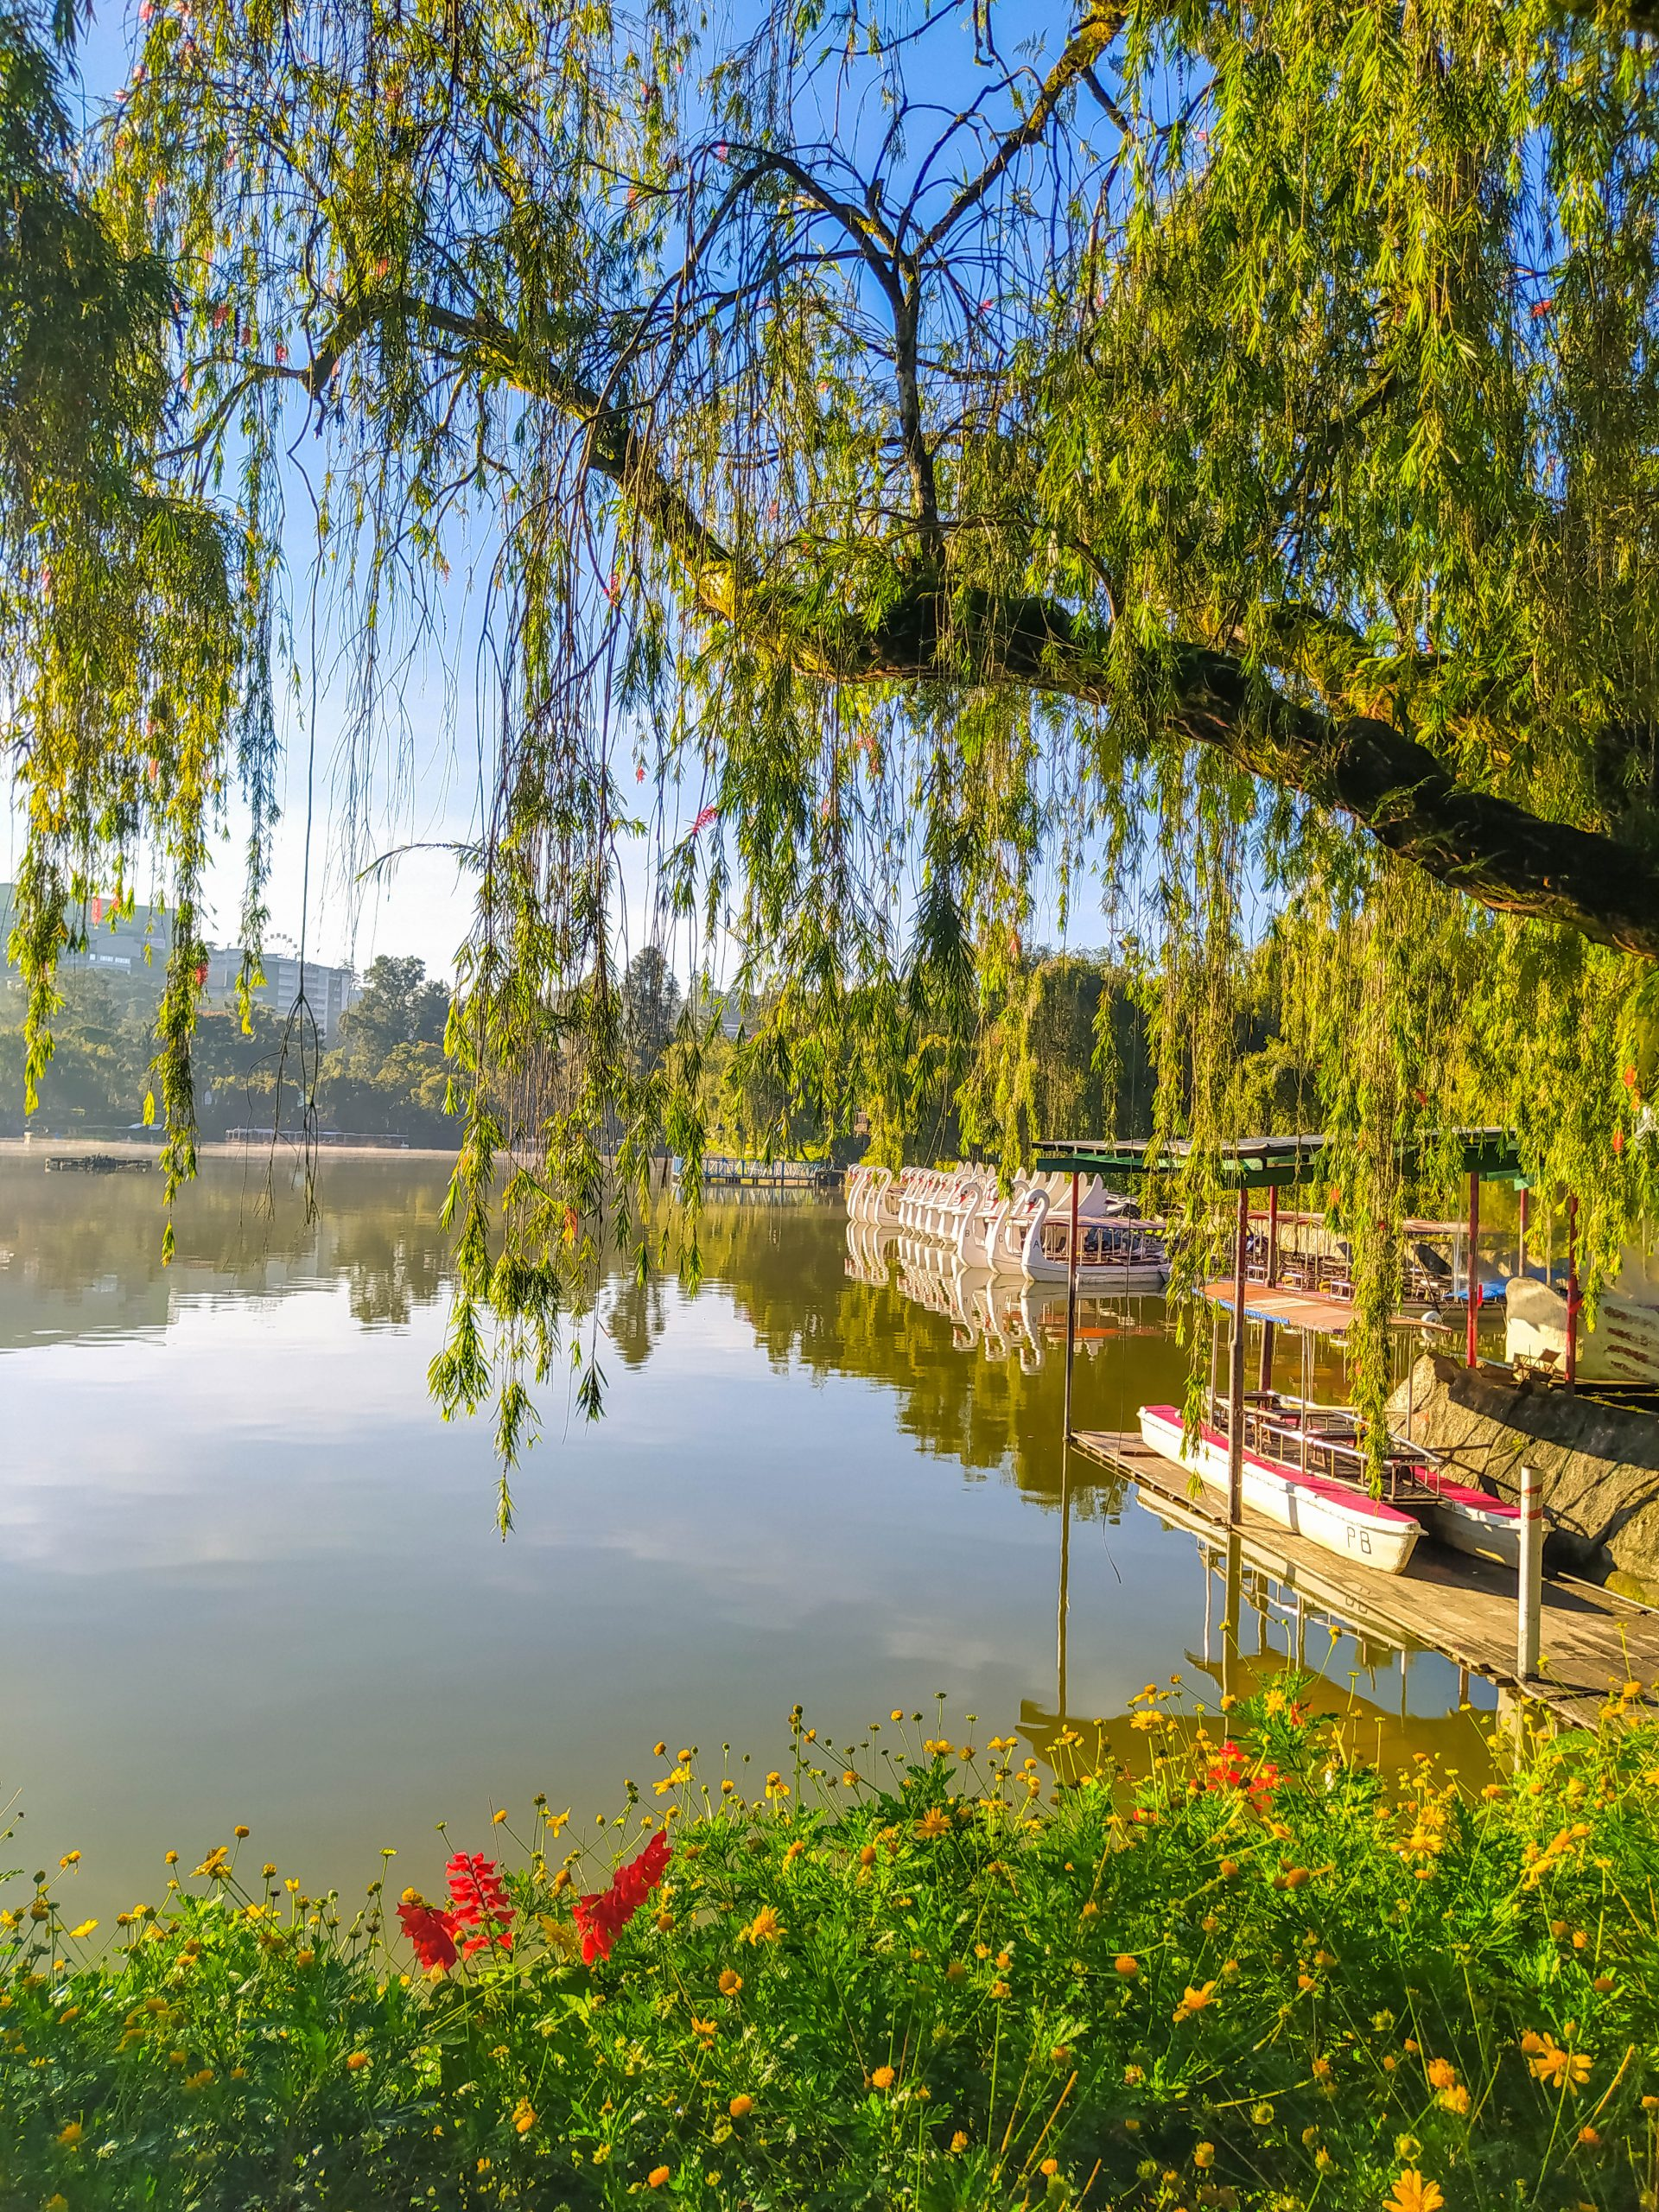 The calm, greenish-brown surface of Burnham Lake, with boats moored on the shoreline, seen through a frame of leaves, branches, and flowers